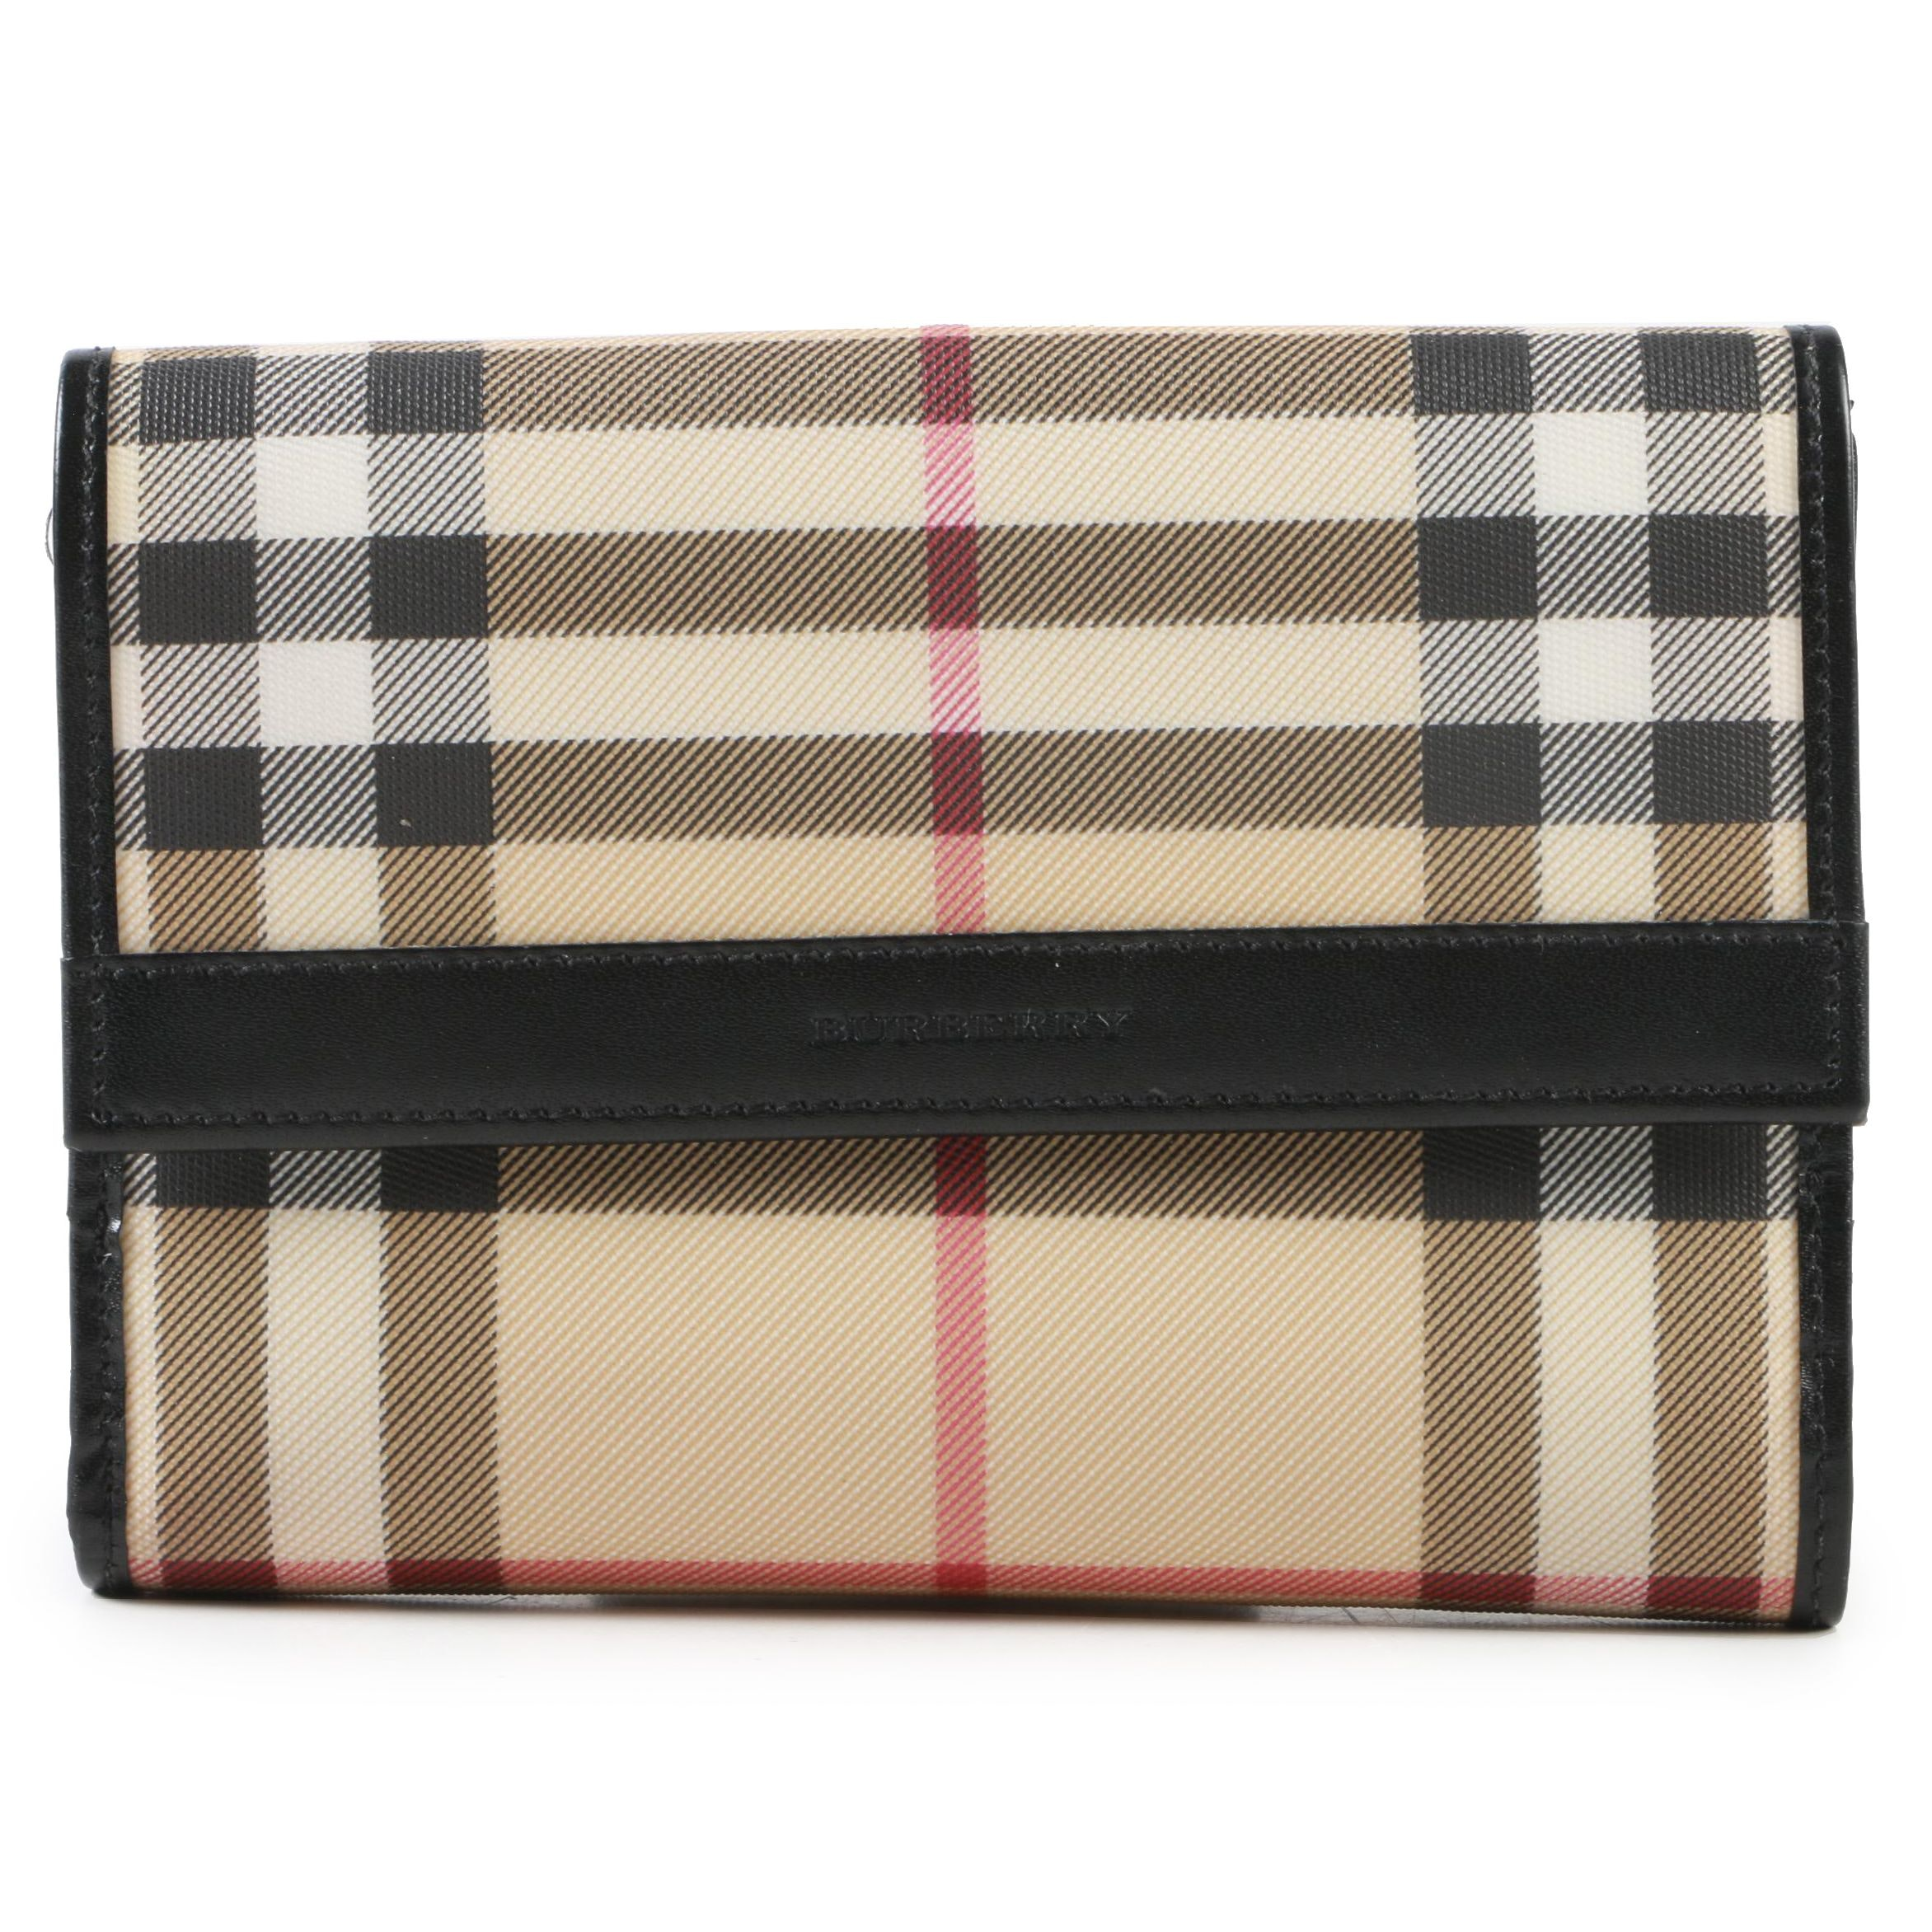 Burberry London Plaid Coated Canvas and Black Leather Bifold Wallet